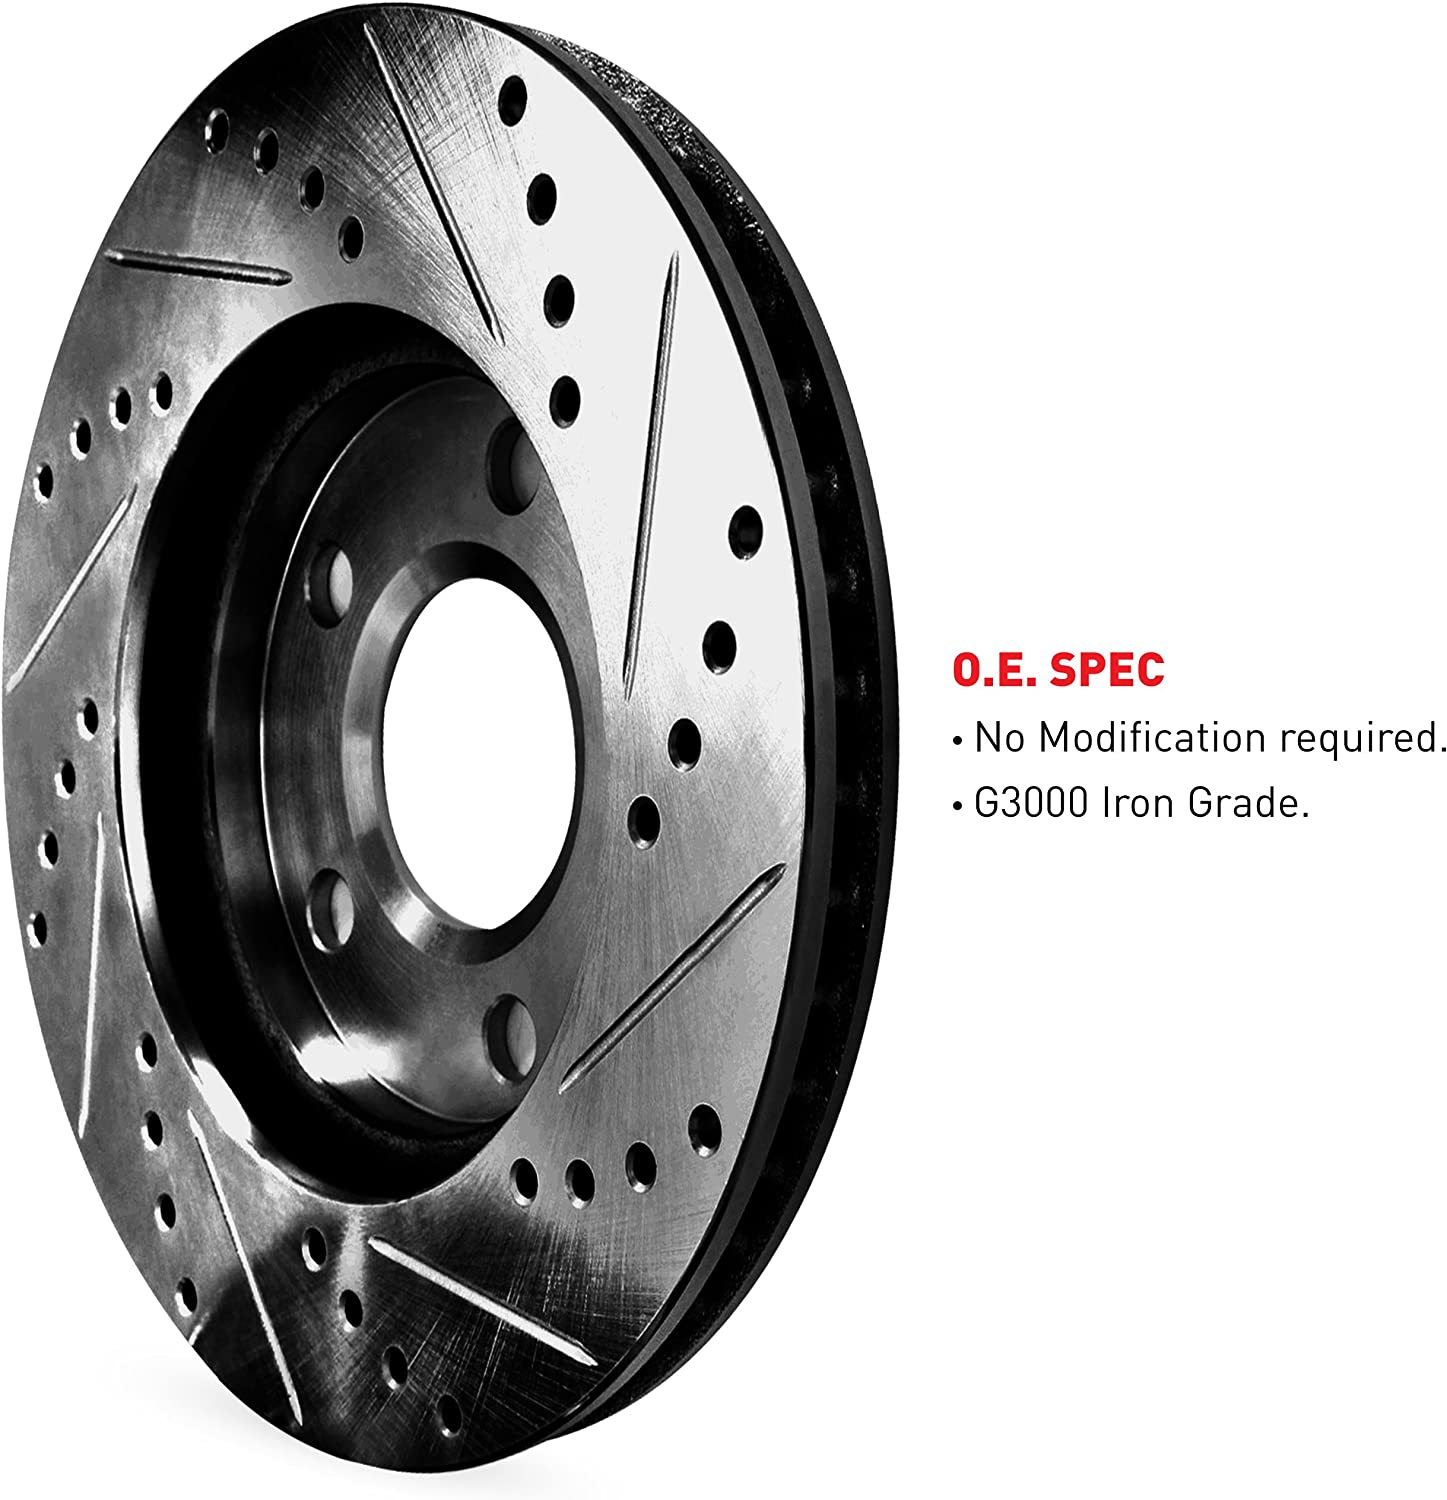 FITS 2009 2010 2011 2012 INFINITI G37X OE BLANK BRAKE ROTORS CERAMIC